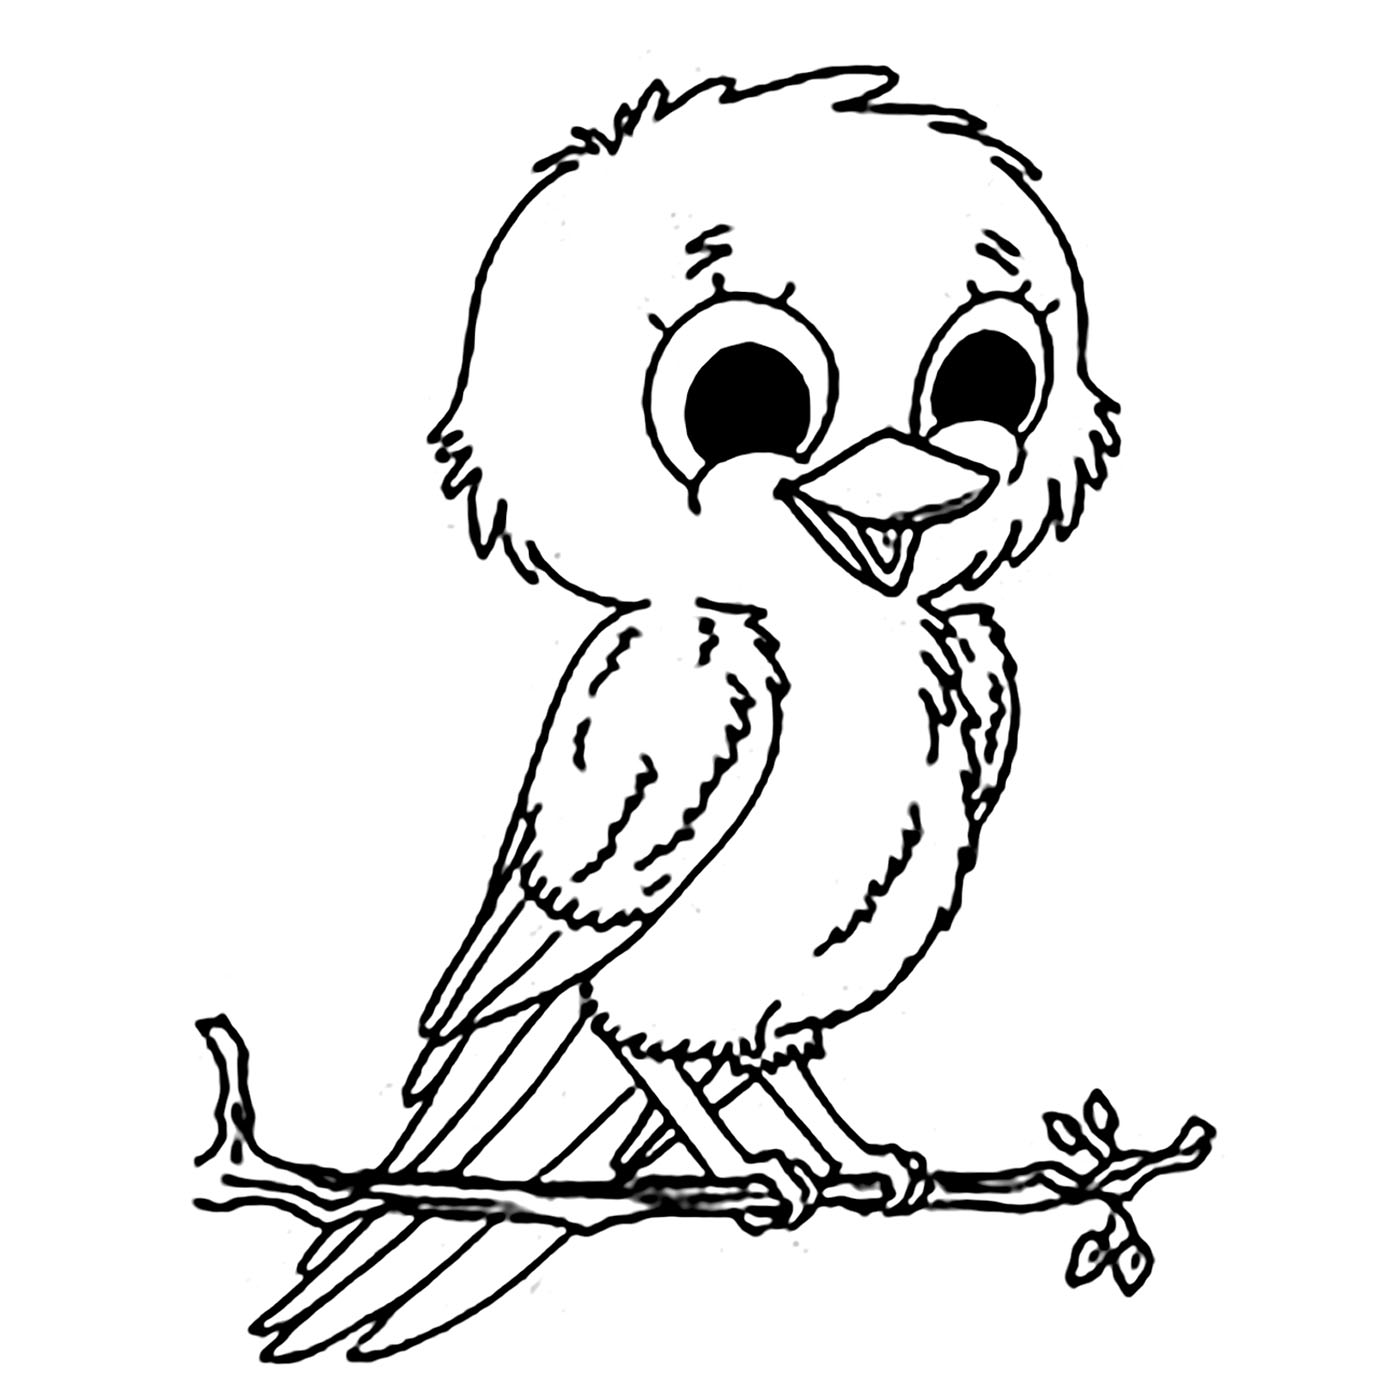 bird coloring images birds coloring pages to knowing the kind of birds name images bird coloring